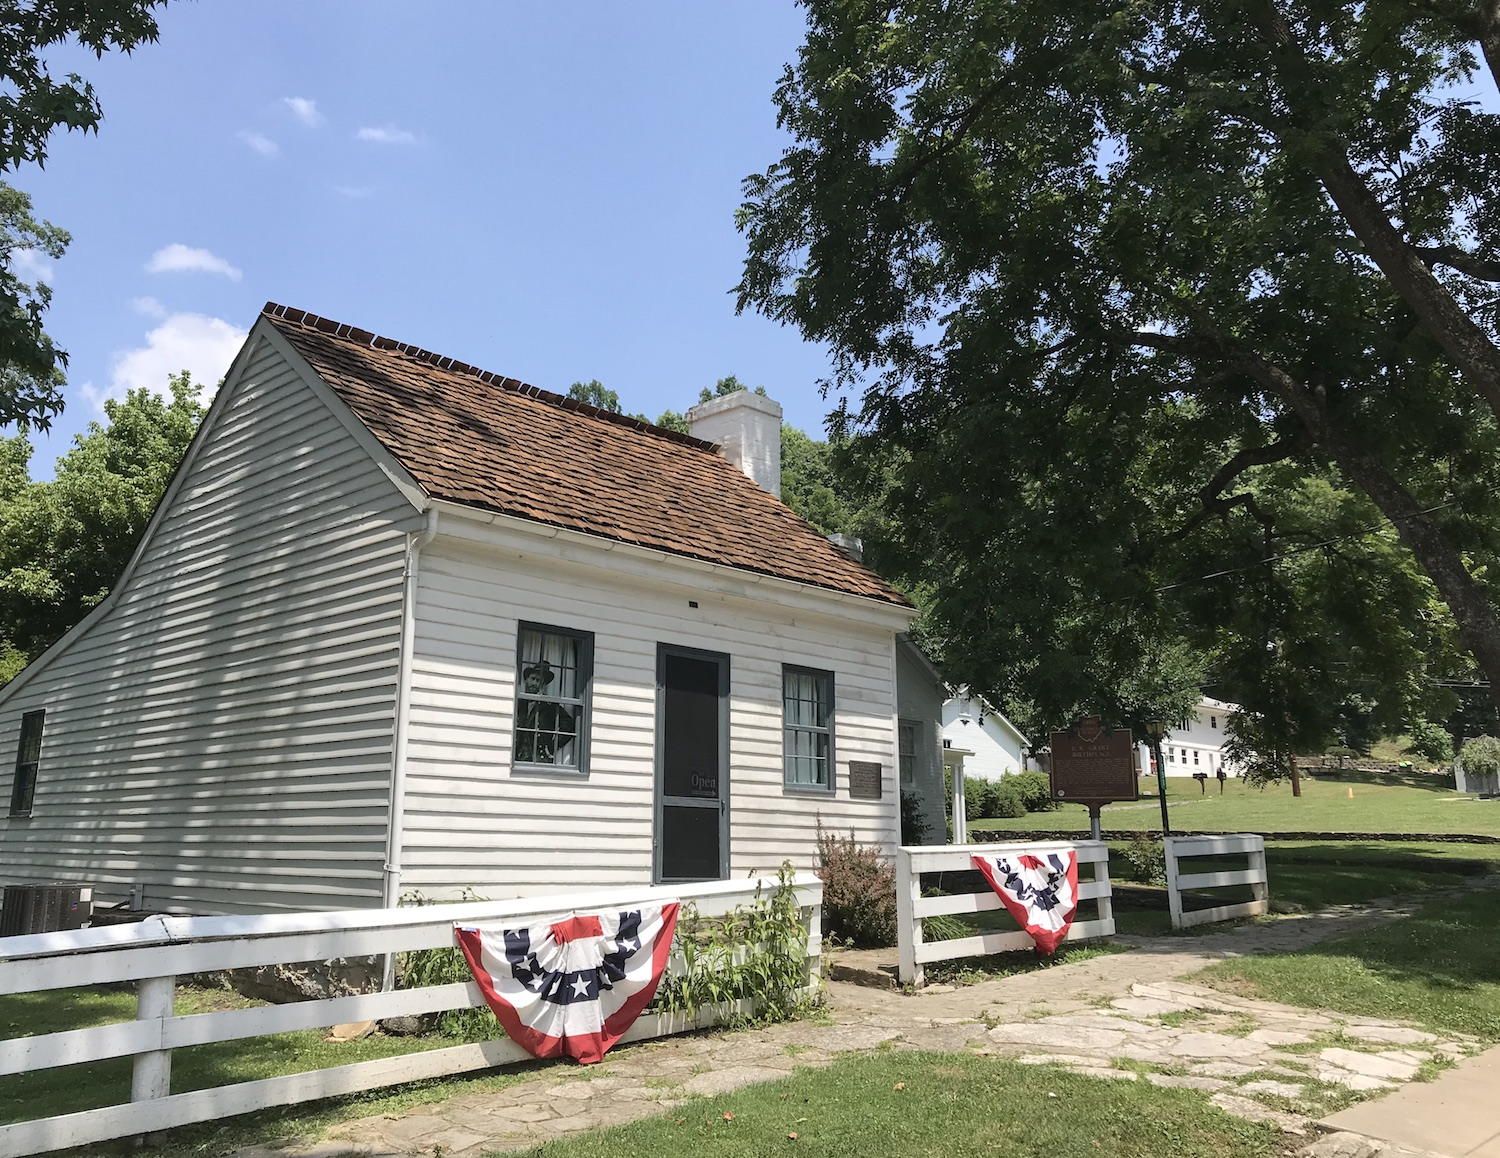 Ulysses S Grant Birthplace Home